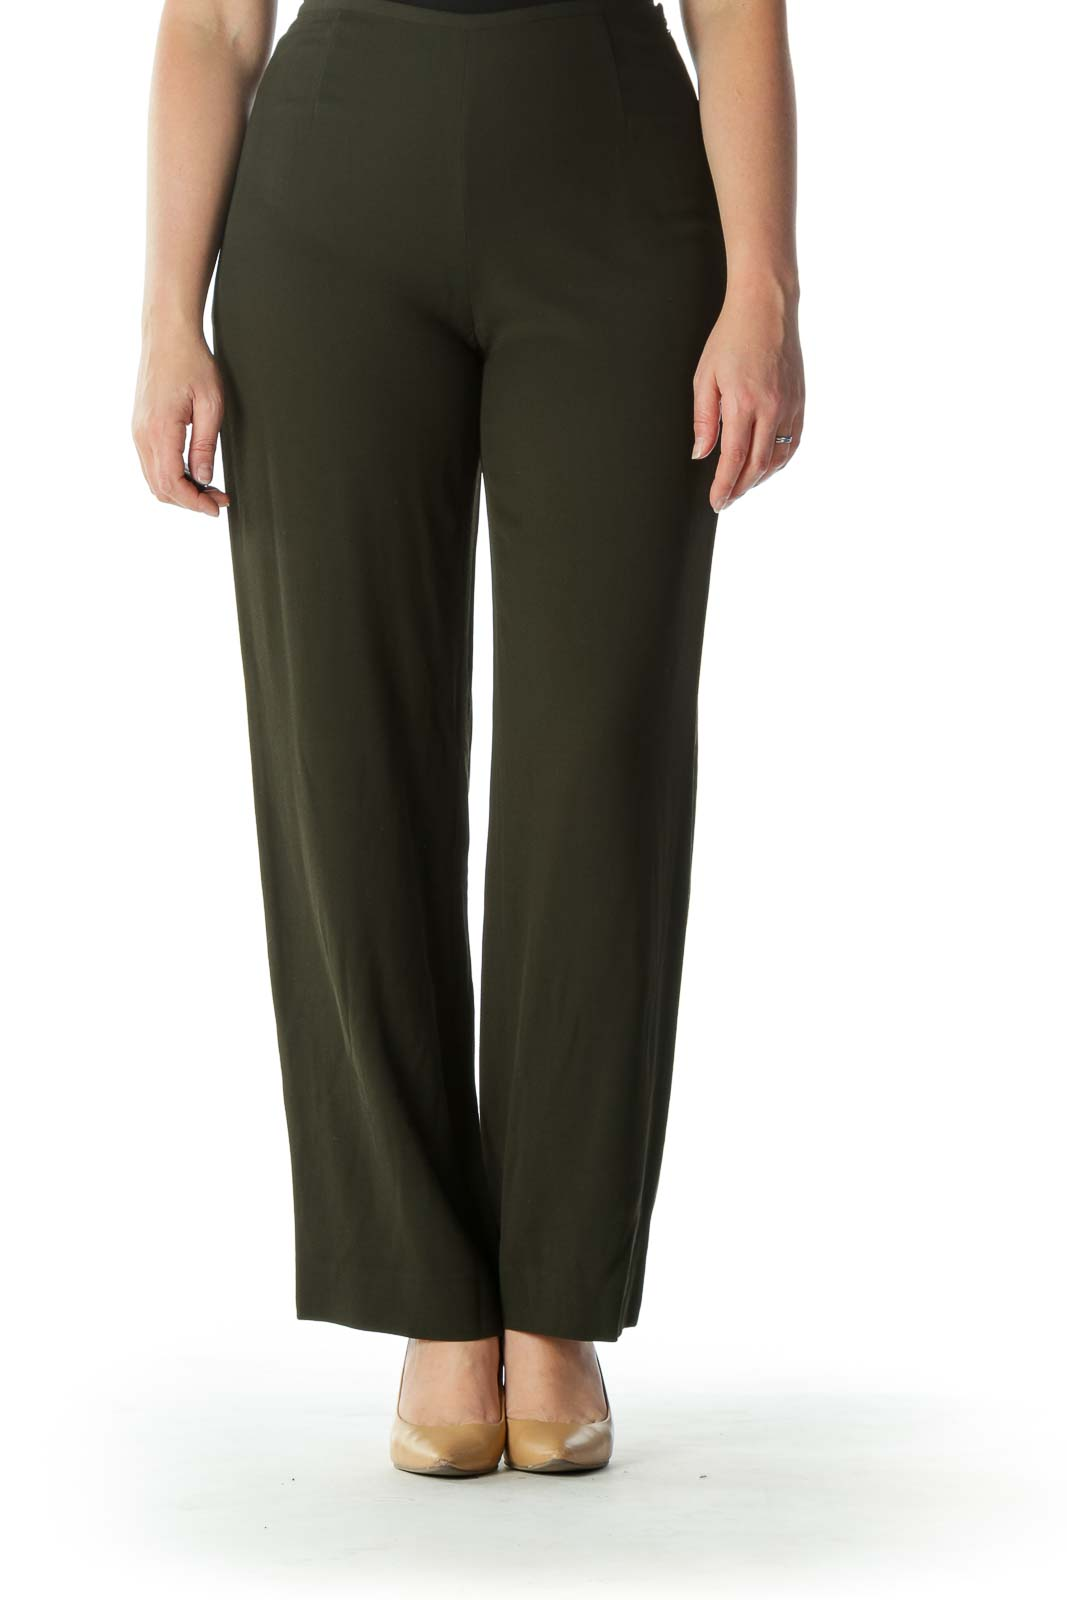 Army Green High-Waisted Designer Pant Front